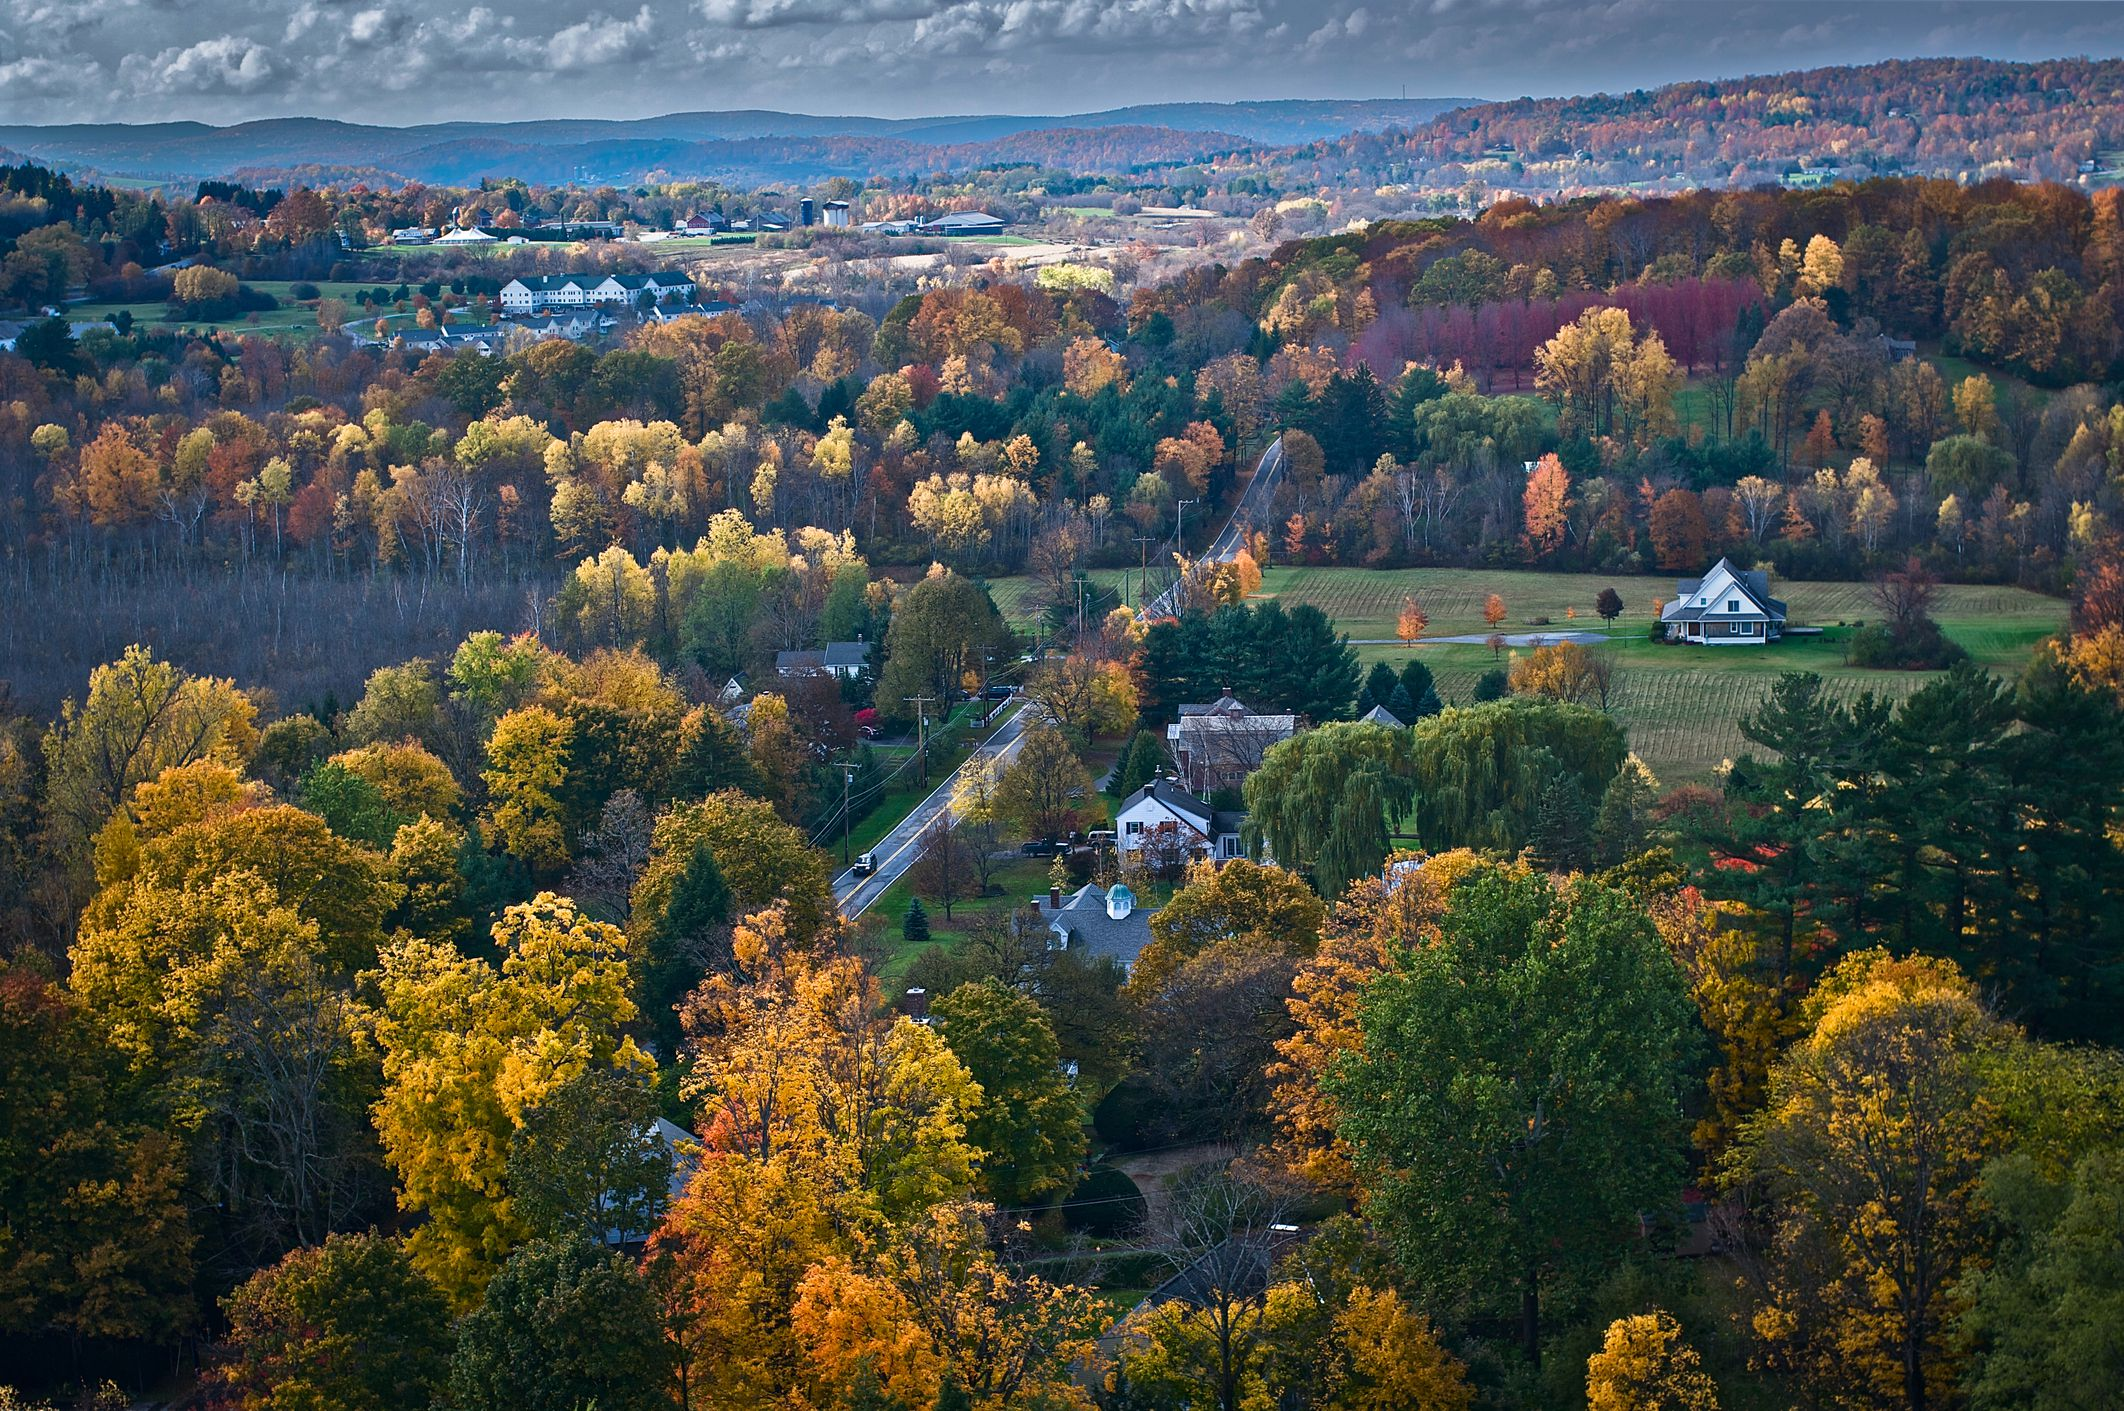 Aerial view of fall foliage near Stowe Vermont